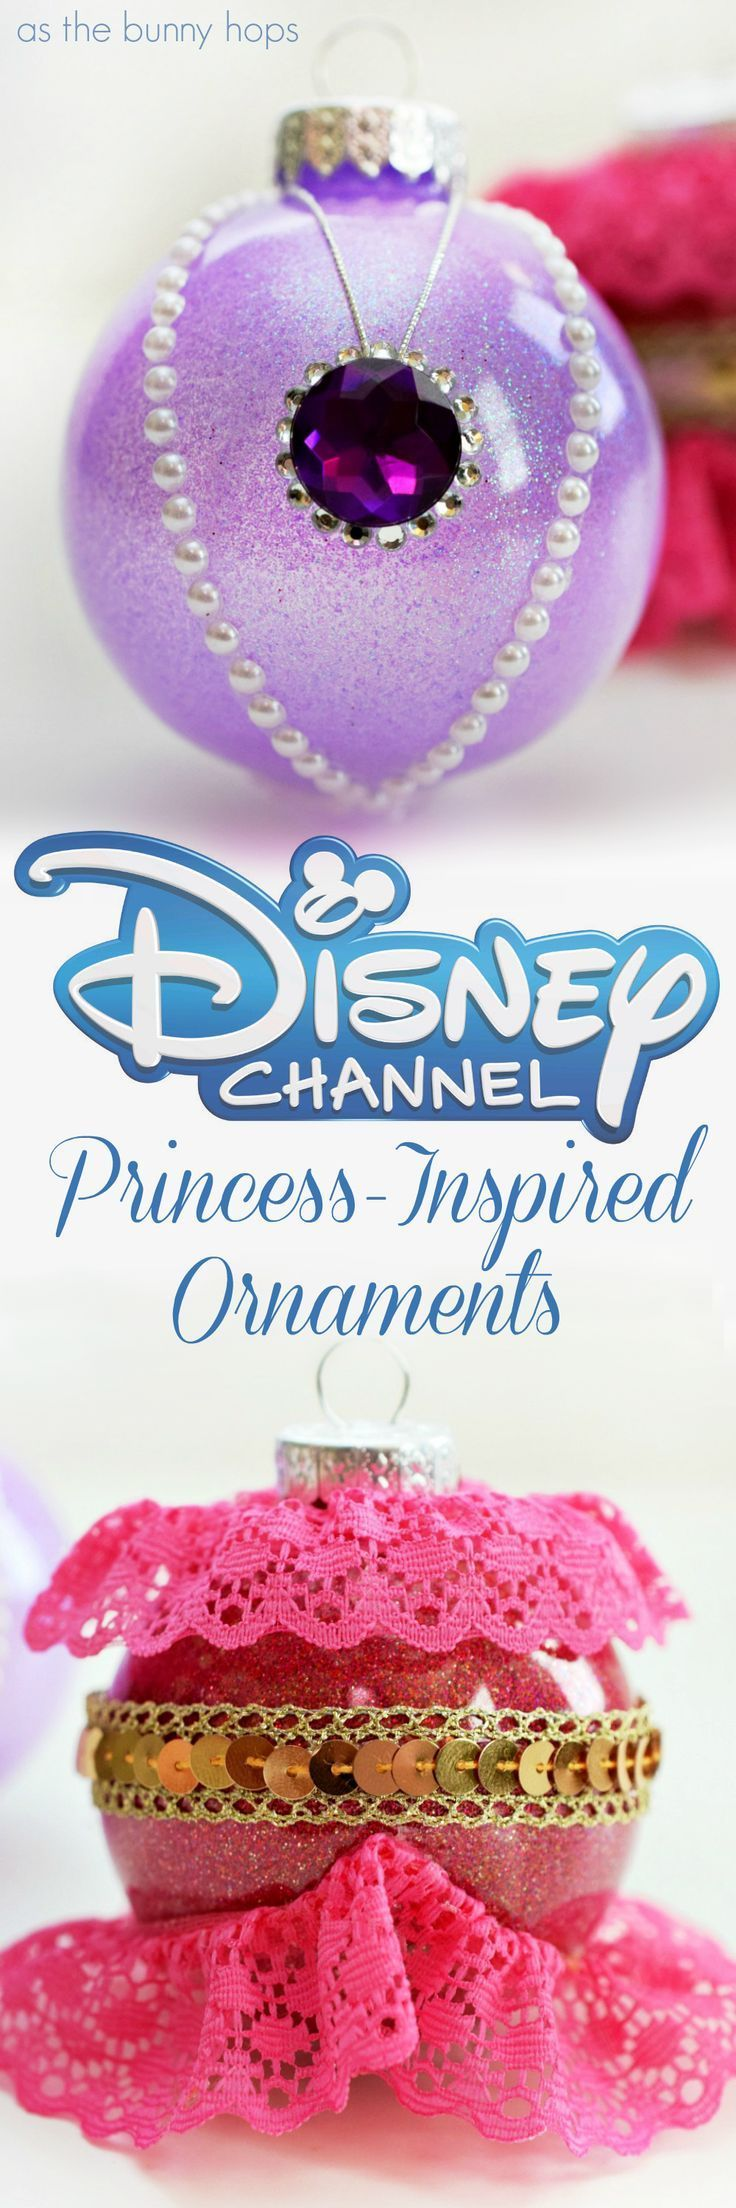 Disney Channel Princessinspired Christmas Ornaments